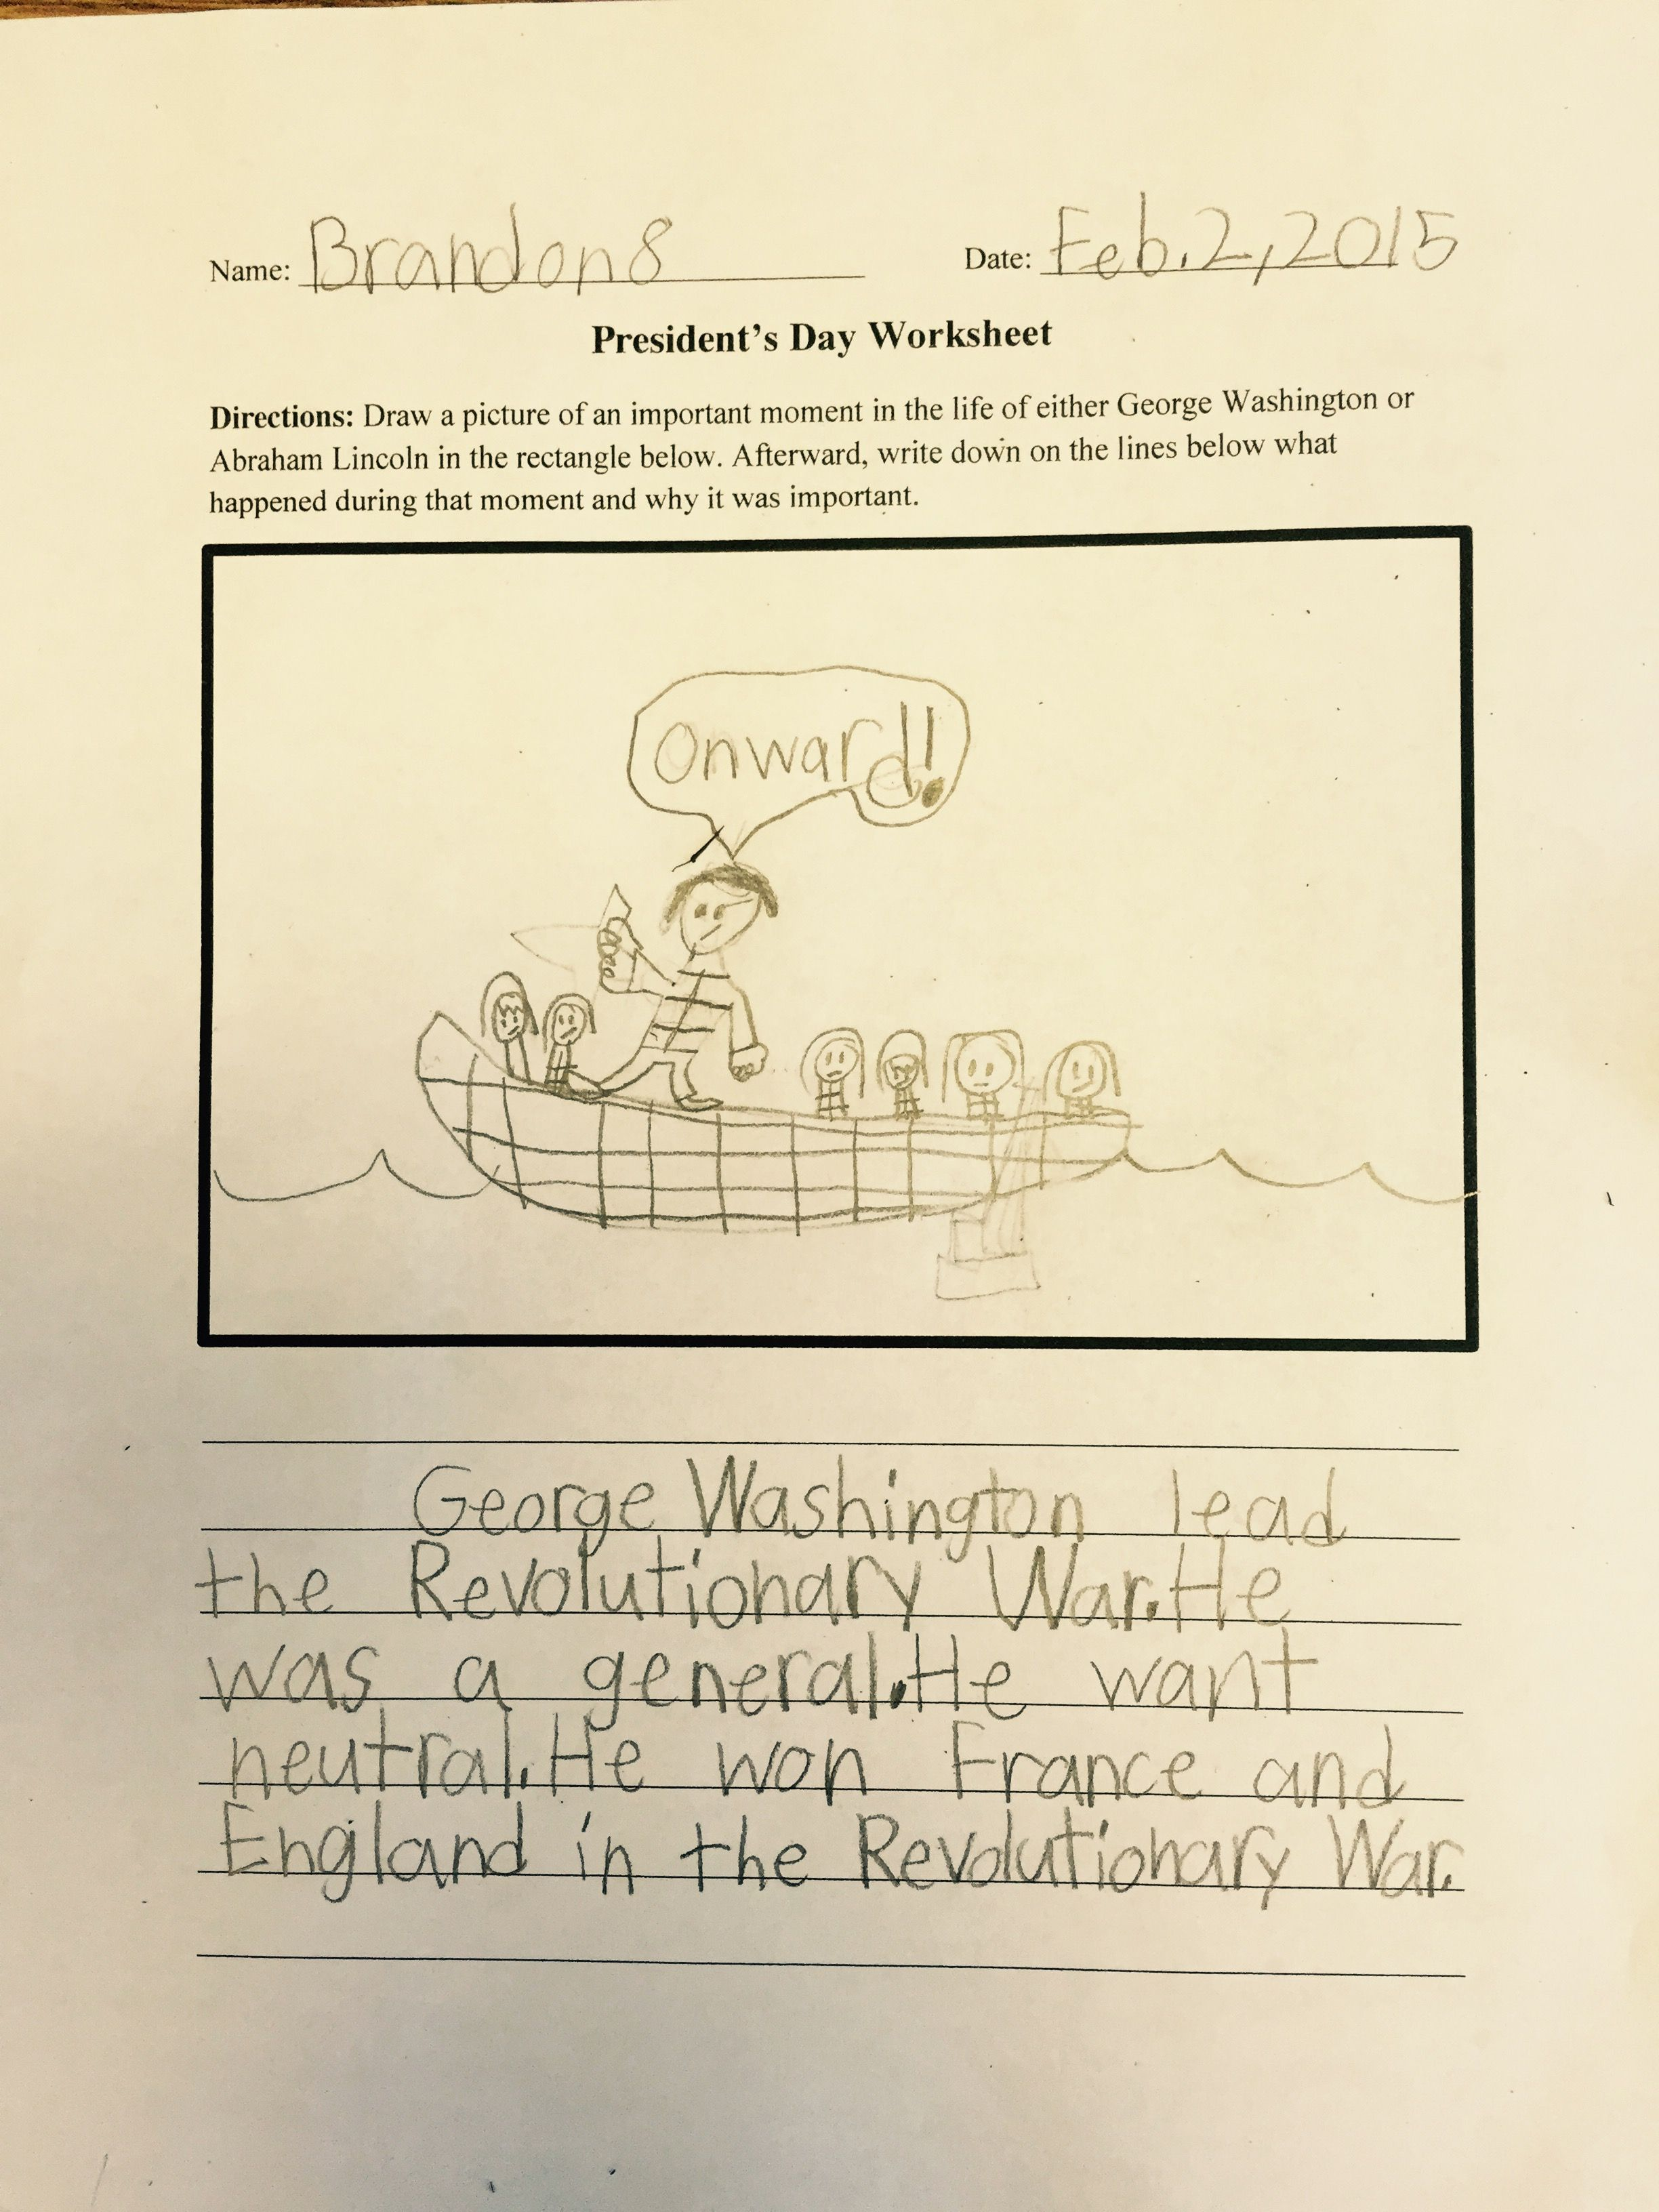 3rd Grade Presidents Day Worksheet With The Instructions Draw An Important Moment In The Life